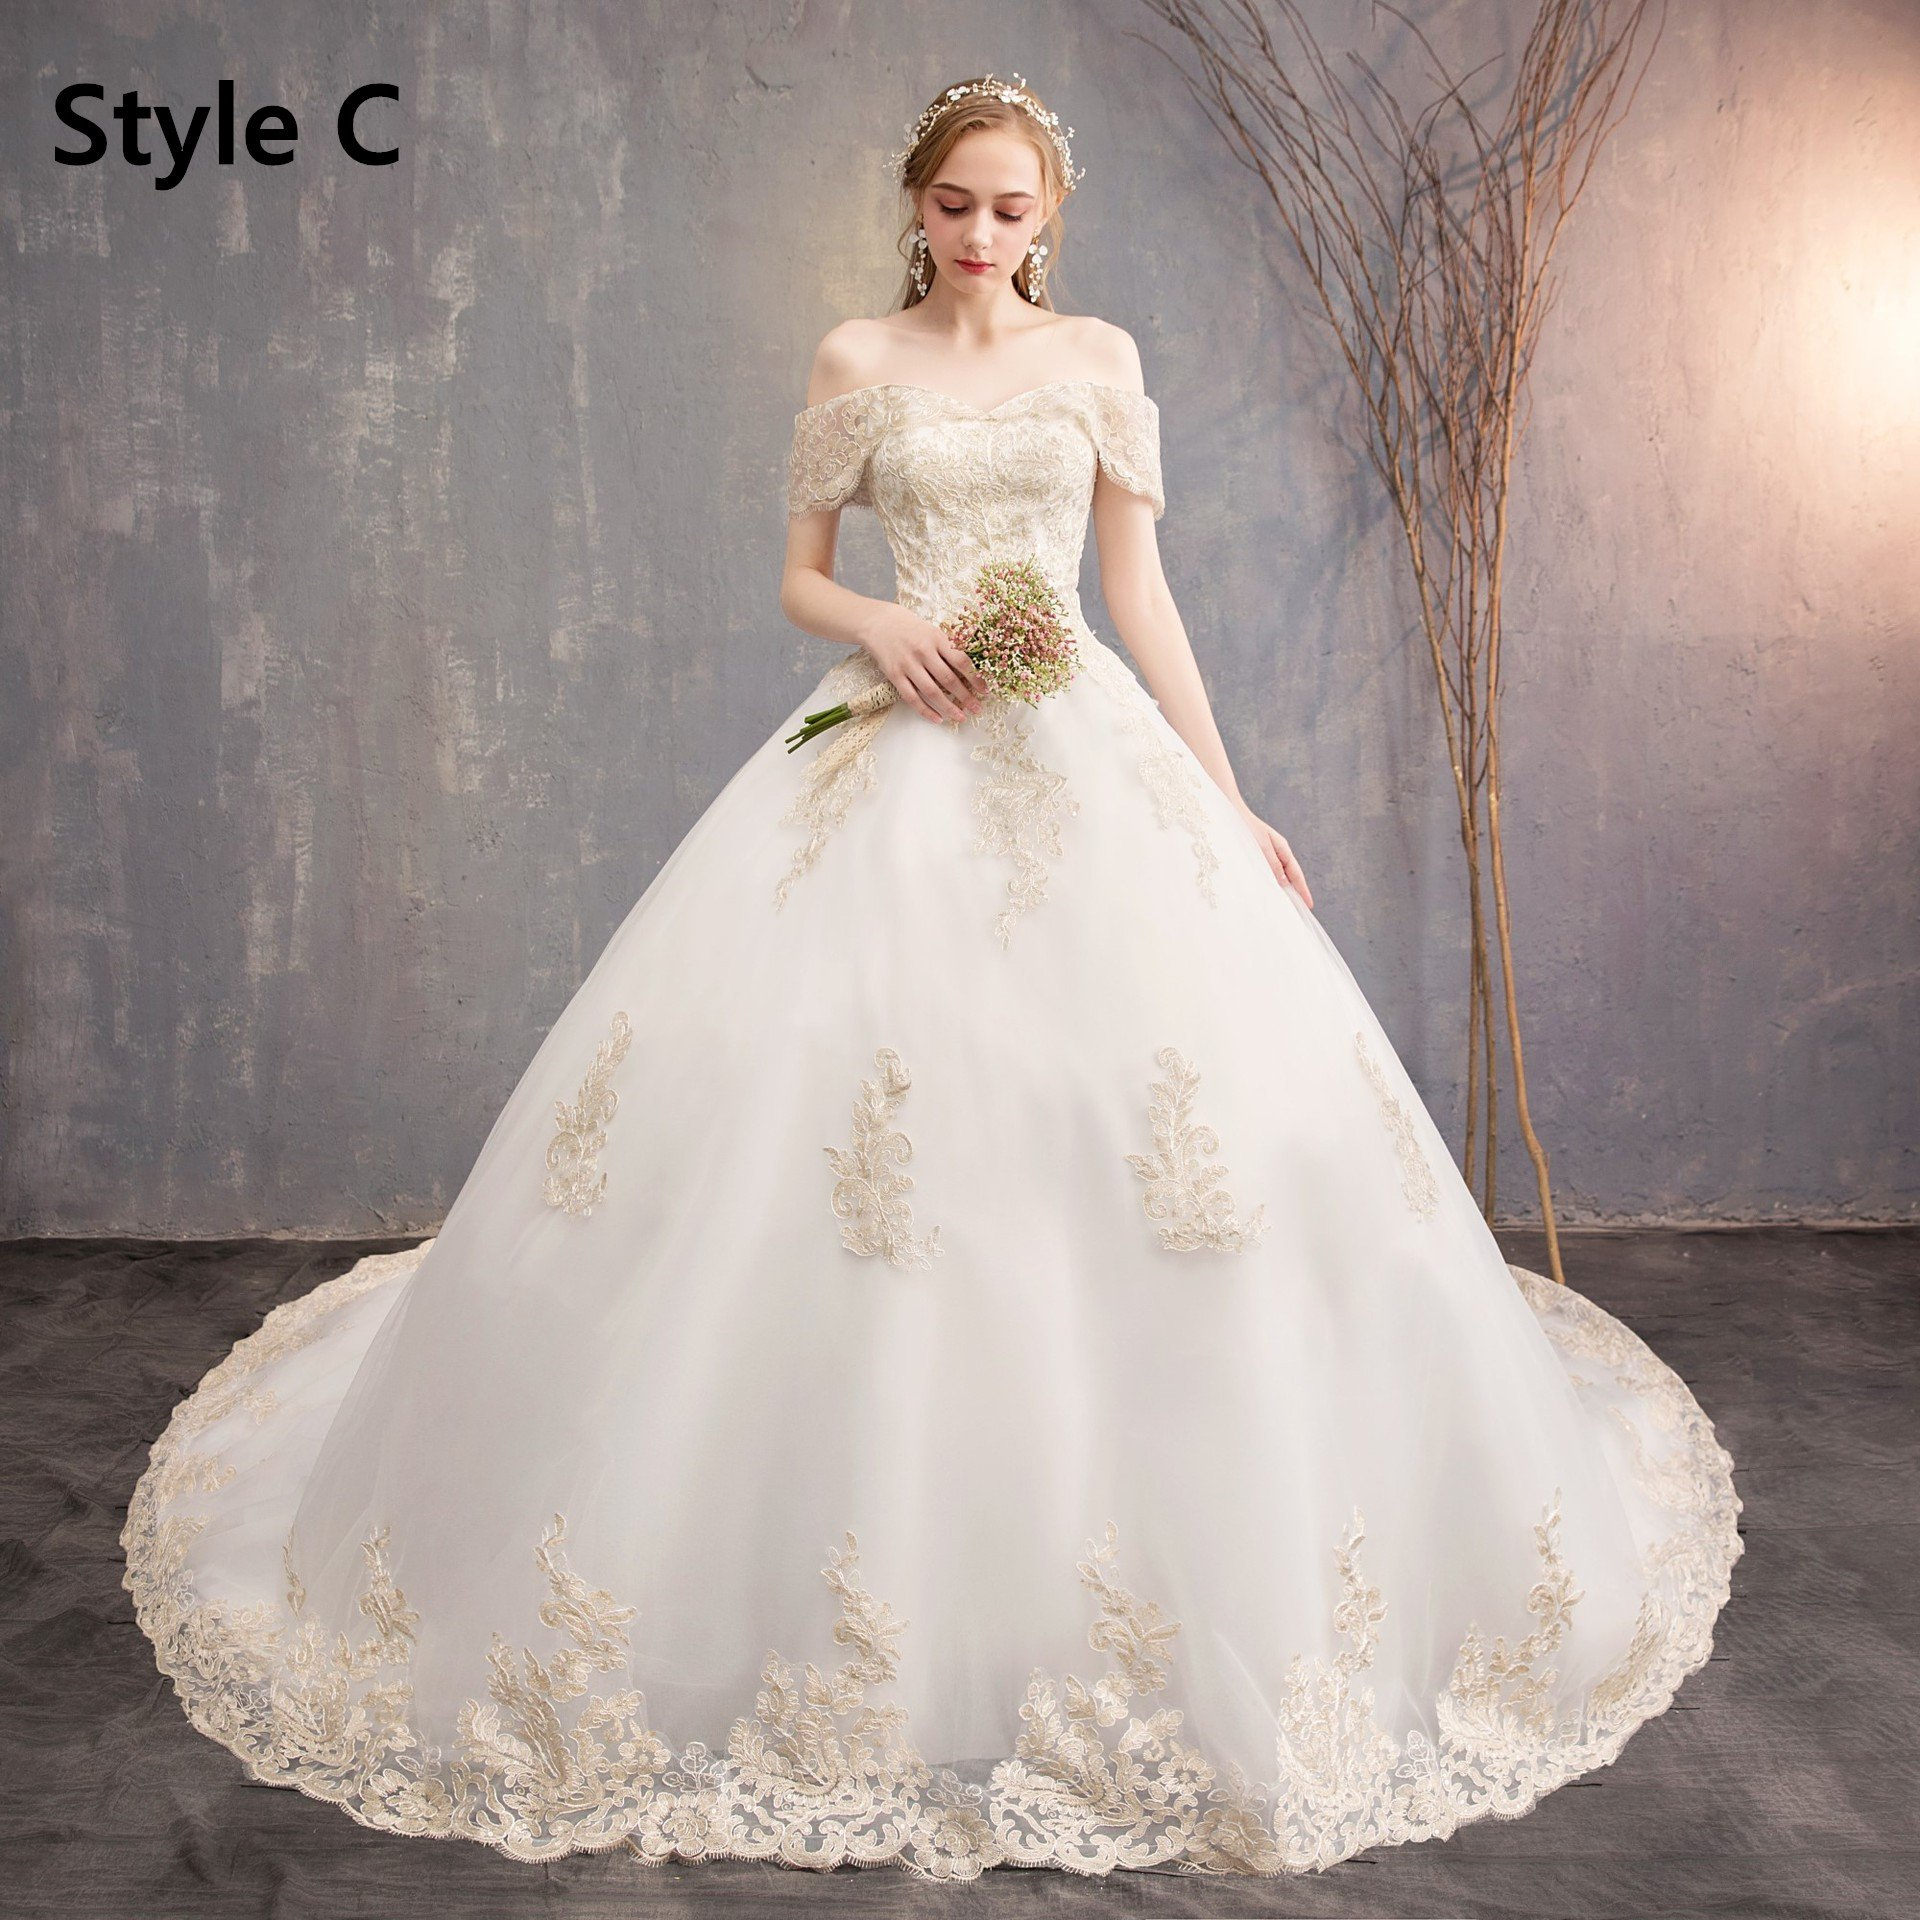 Lace Wedding Dresses 2020 New 715 Womens Linen Suits For Beach Wedding Royal Blue Prom Dresses White Floral Long Sleeve Dress Wedding Giveaways Wedding Dress Undergarments Black Lace Bridesmaid Dress